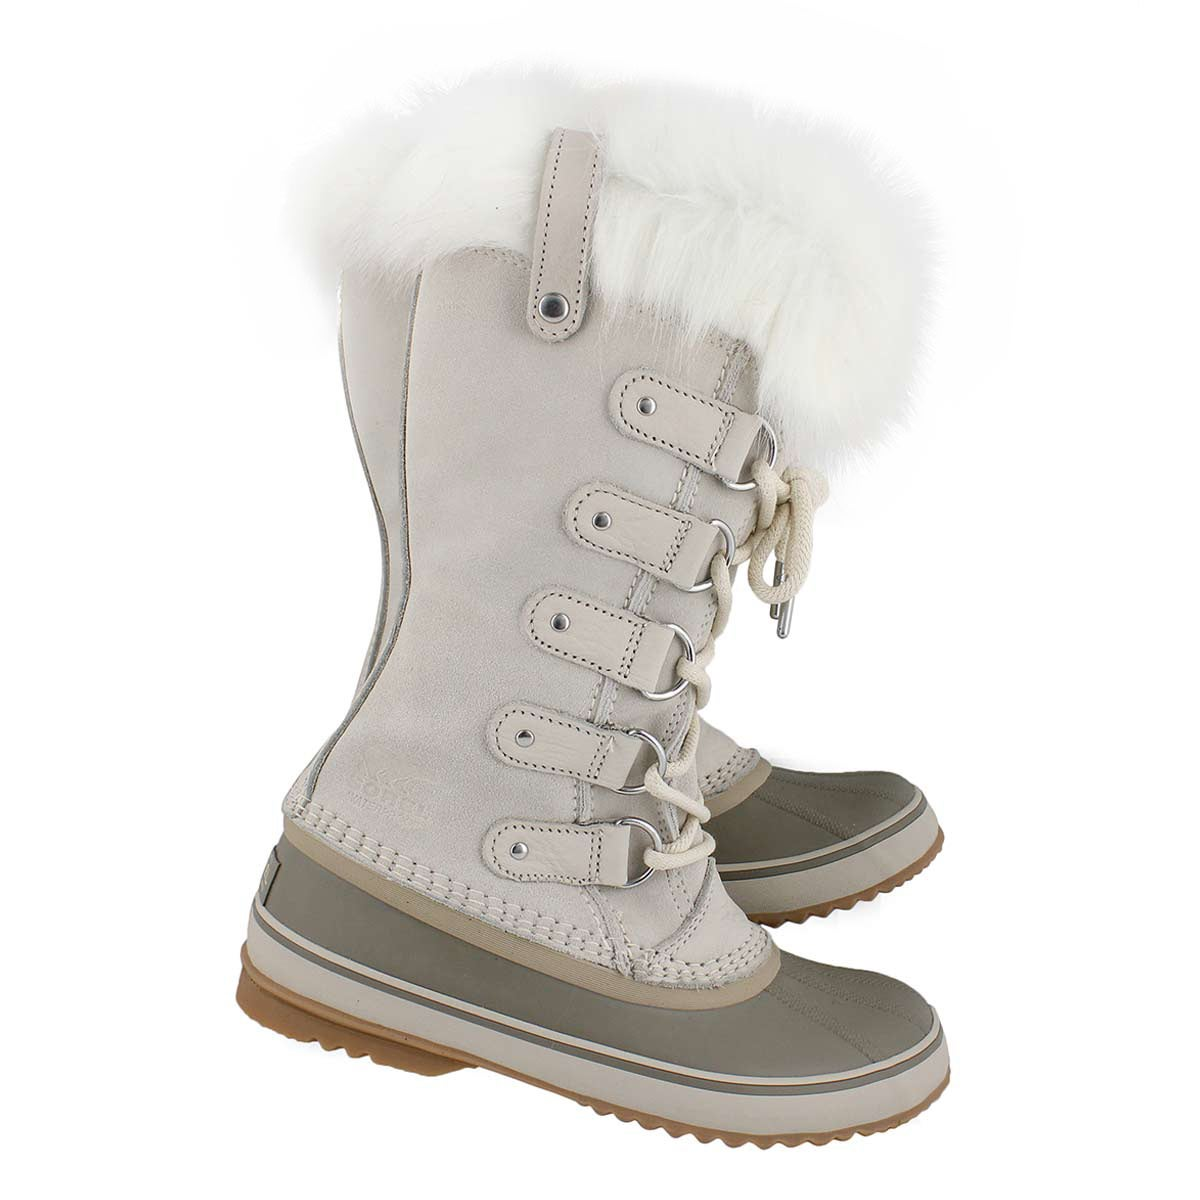 Lds Joan of Arctic fawn winter boot